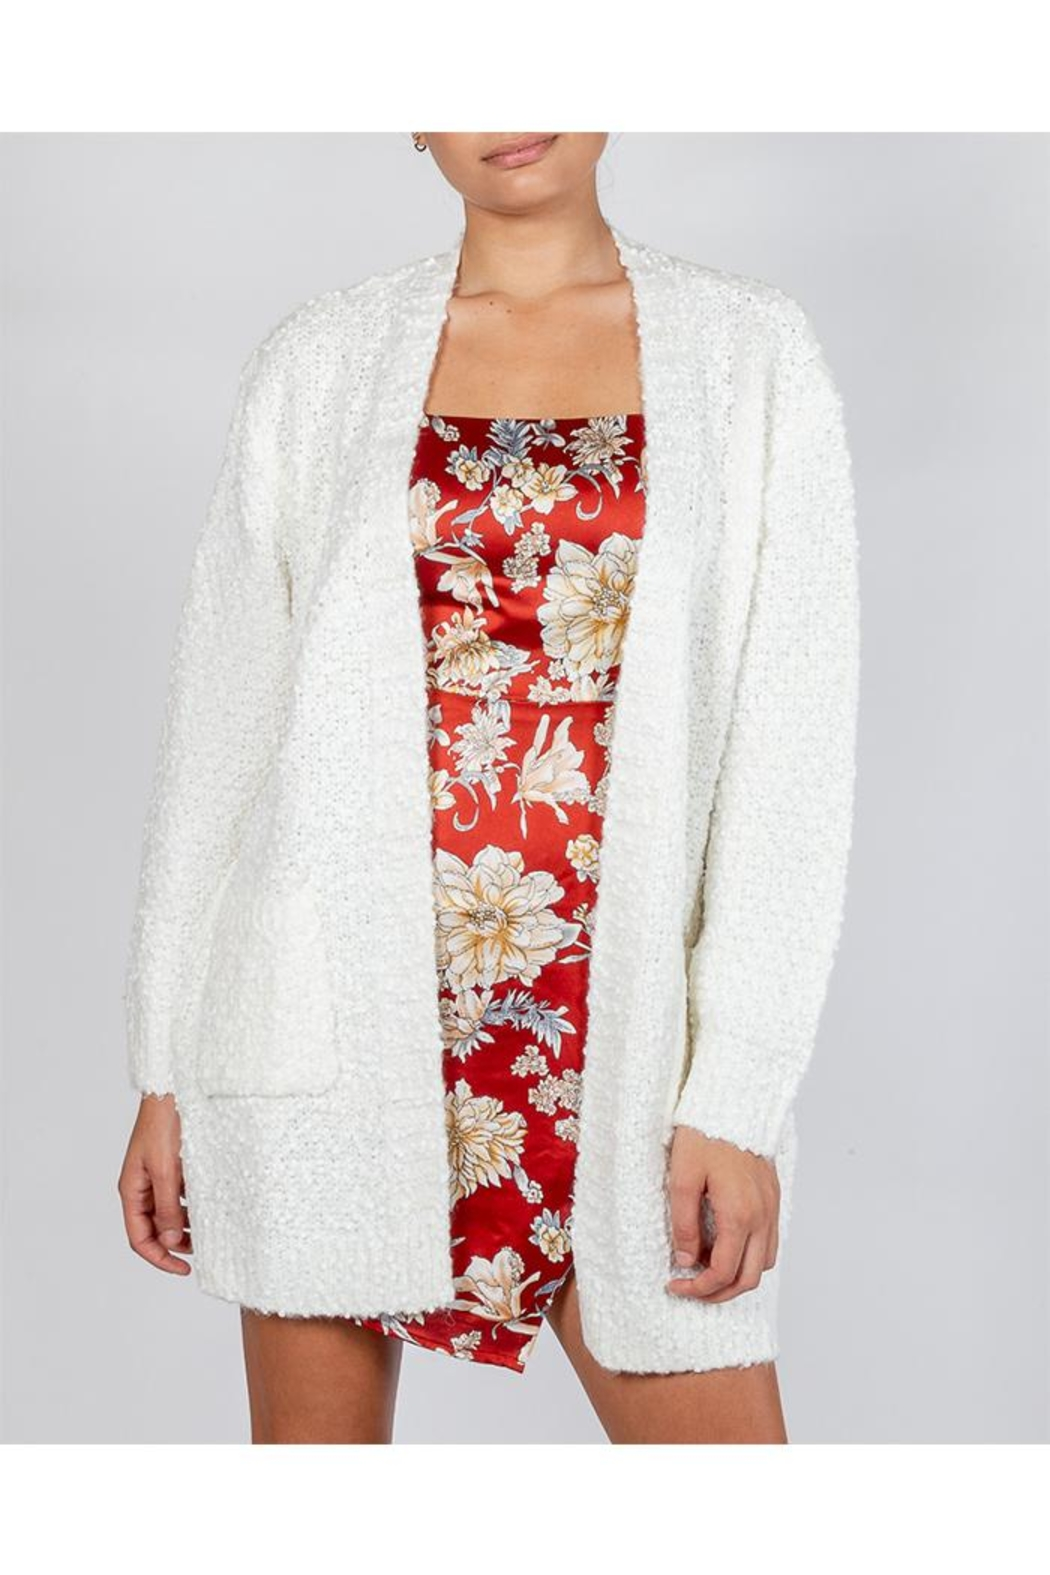 Cotton Candy Snowball White Cardigan - Main Image